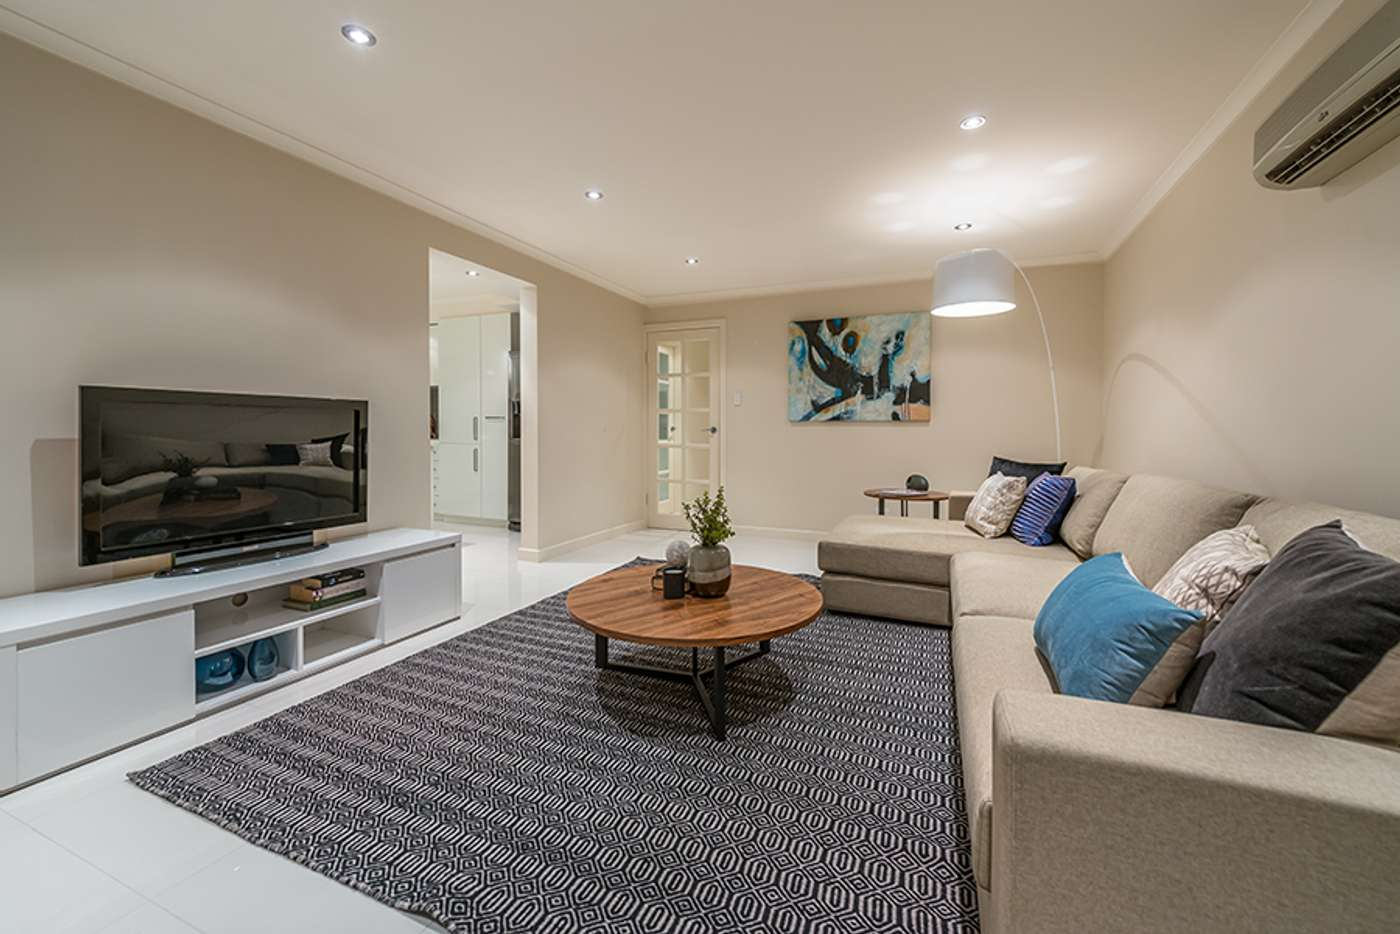 Main view of Homely apartment listing, 5/26 St Leonards Avenue, West Leederville WA 6007